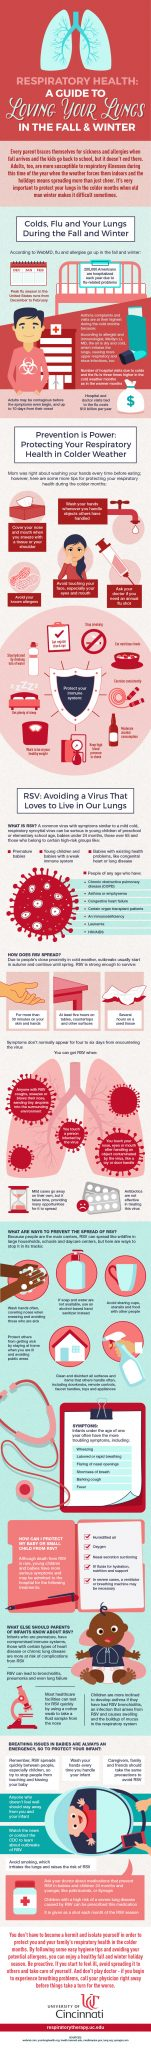 Respiratory Health - protect lungs while traveling